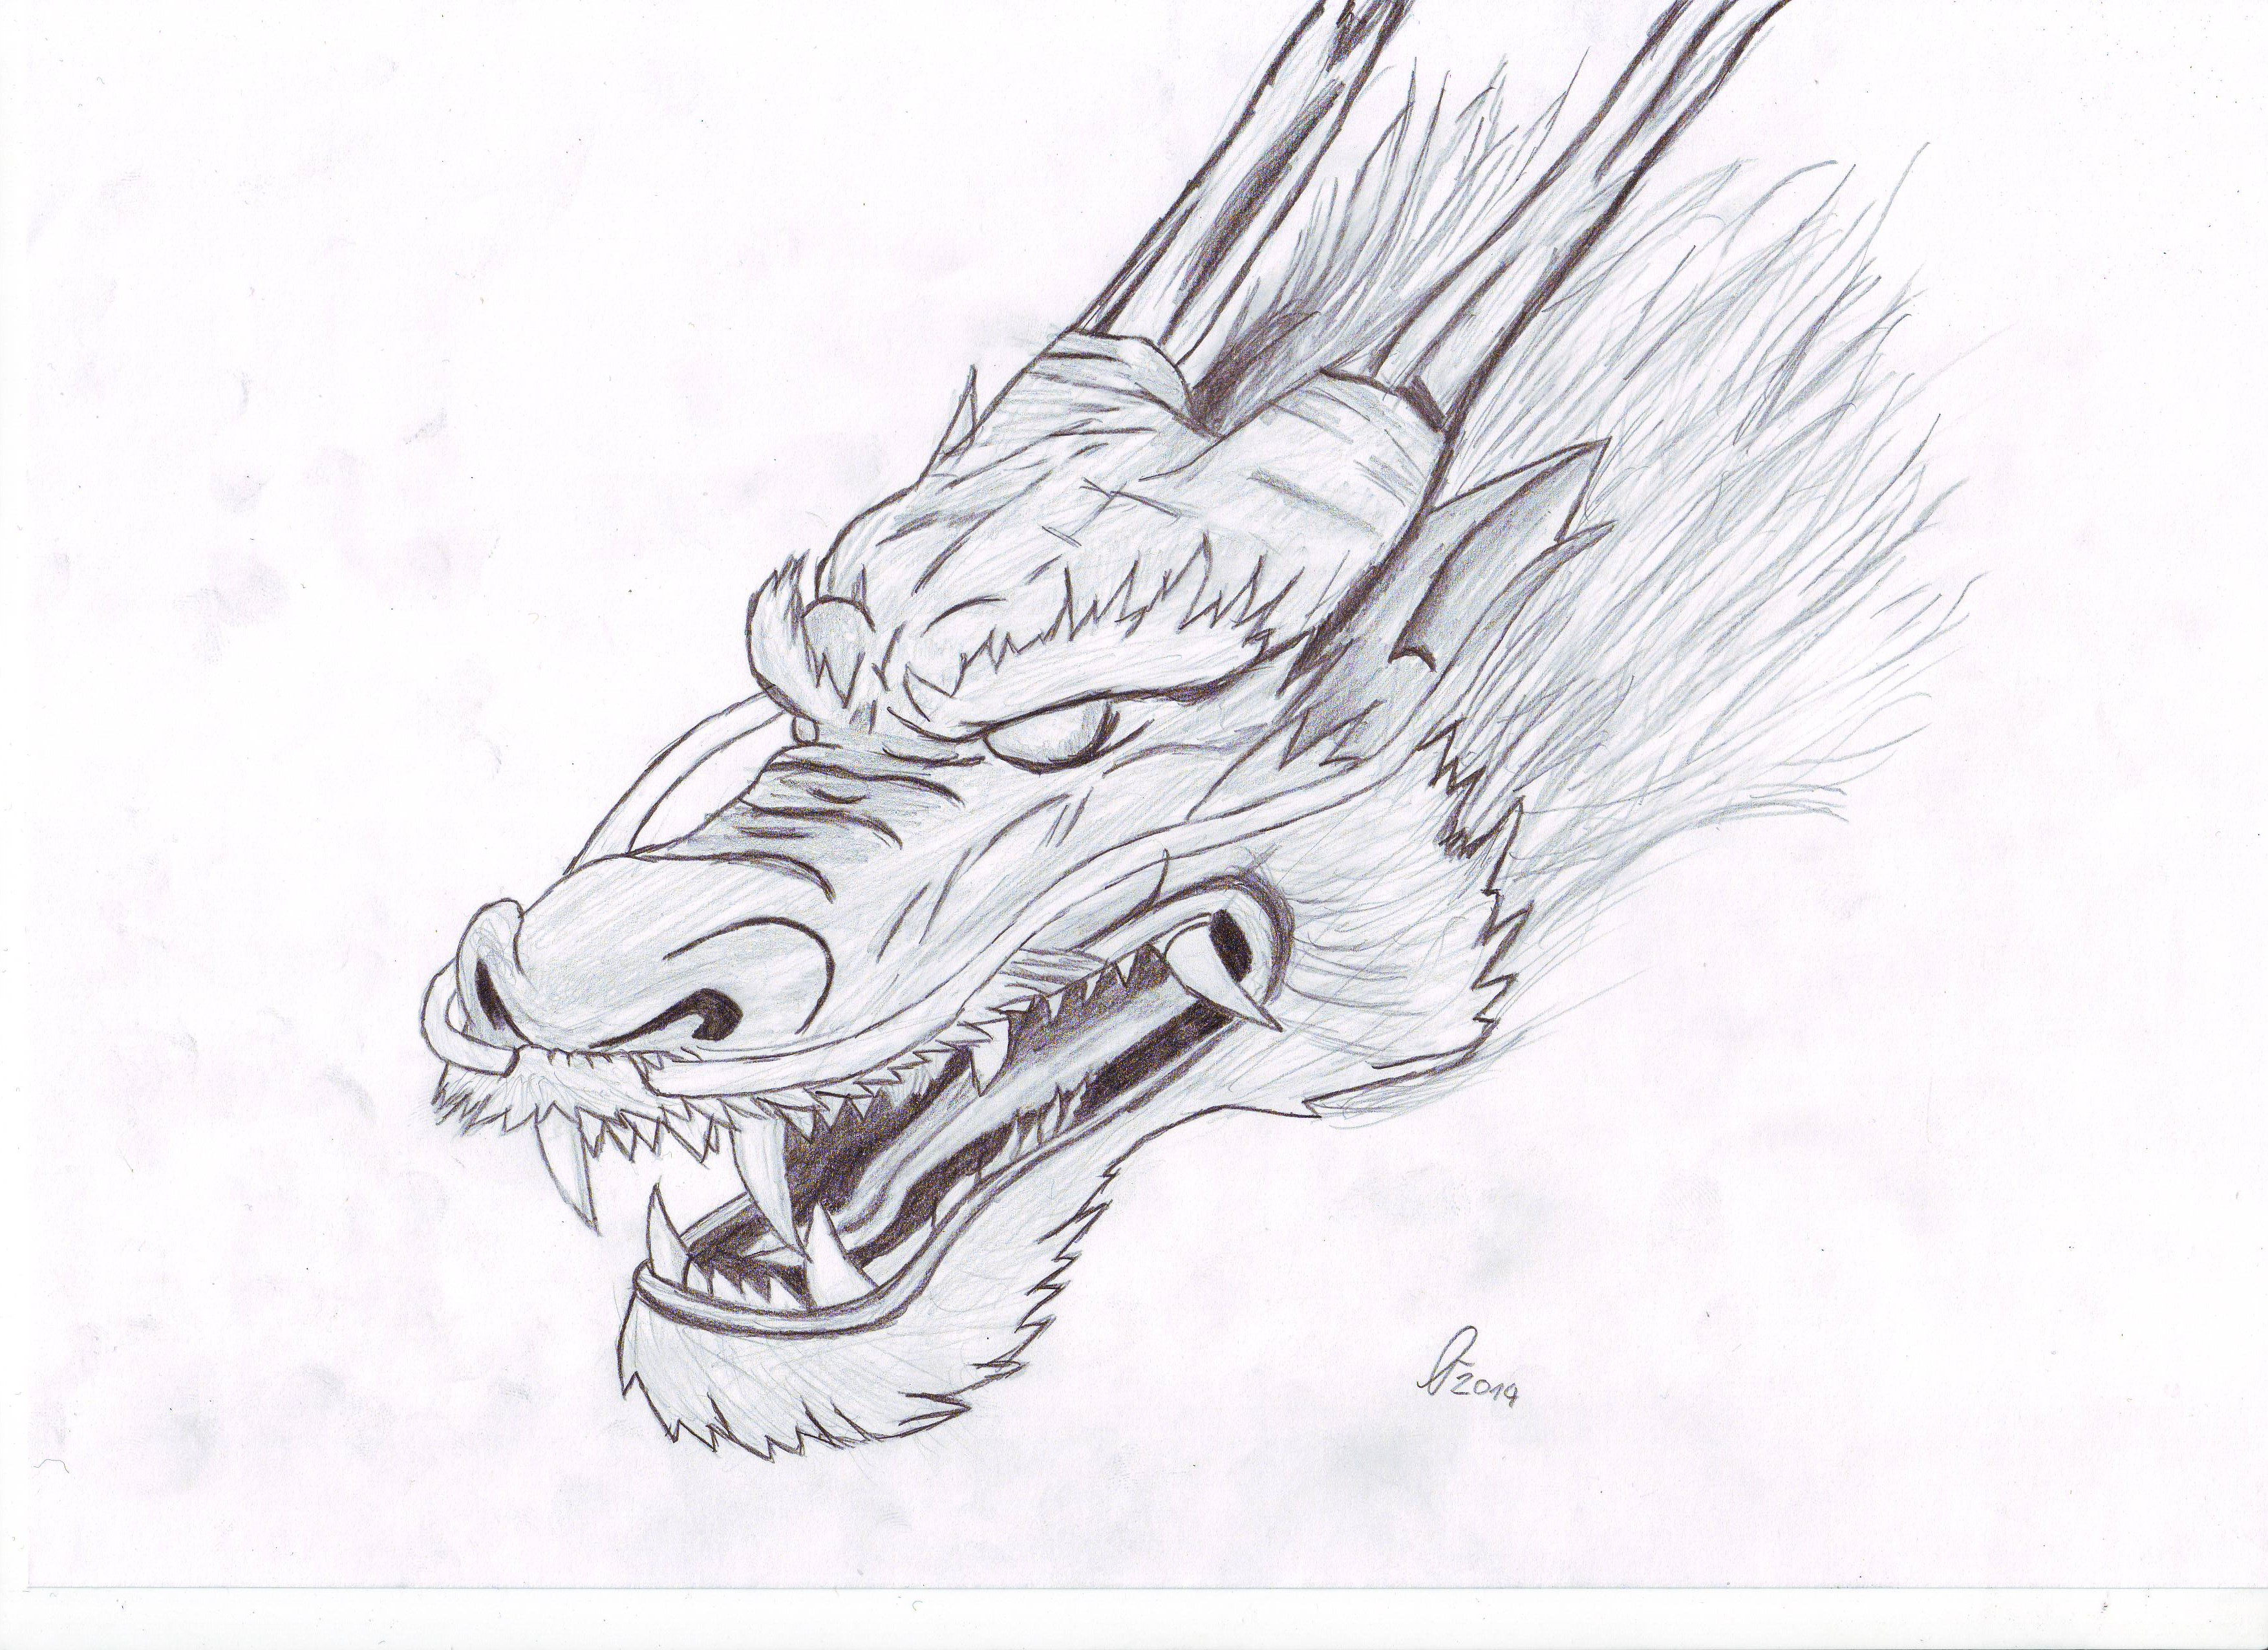 chinese dragon sketch by dashapple on deviantart apple core clipart free red apple core clipart